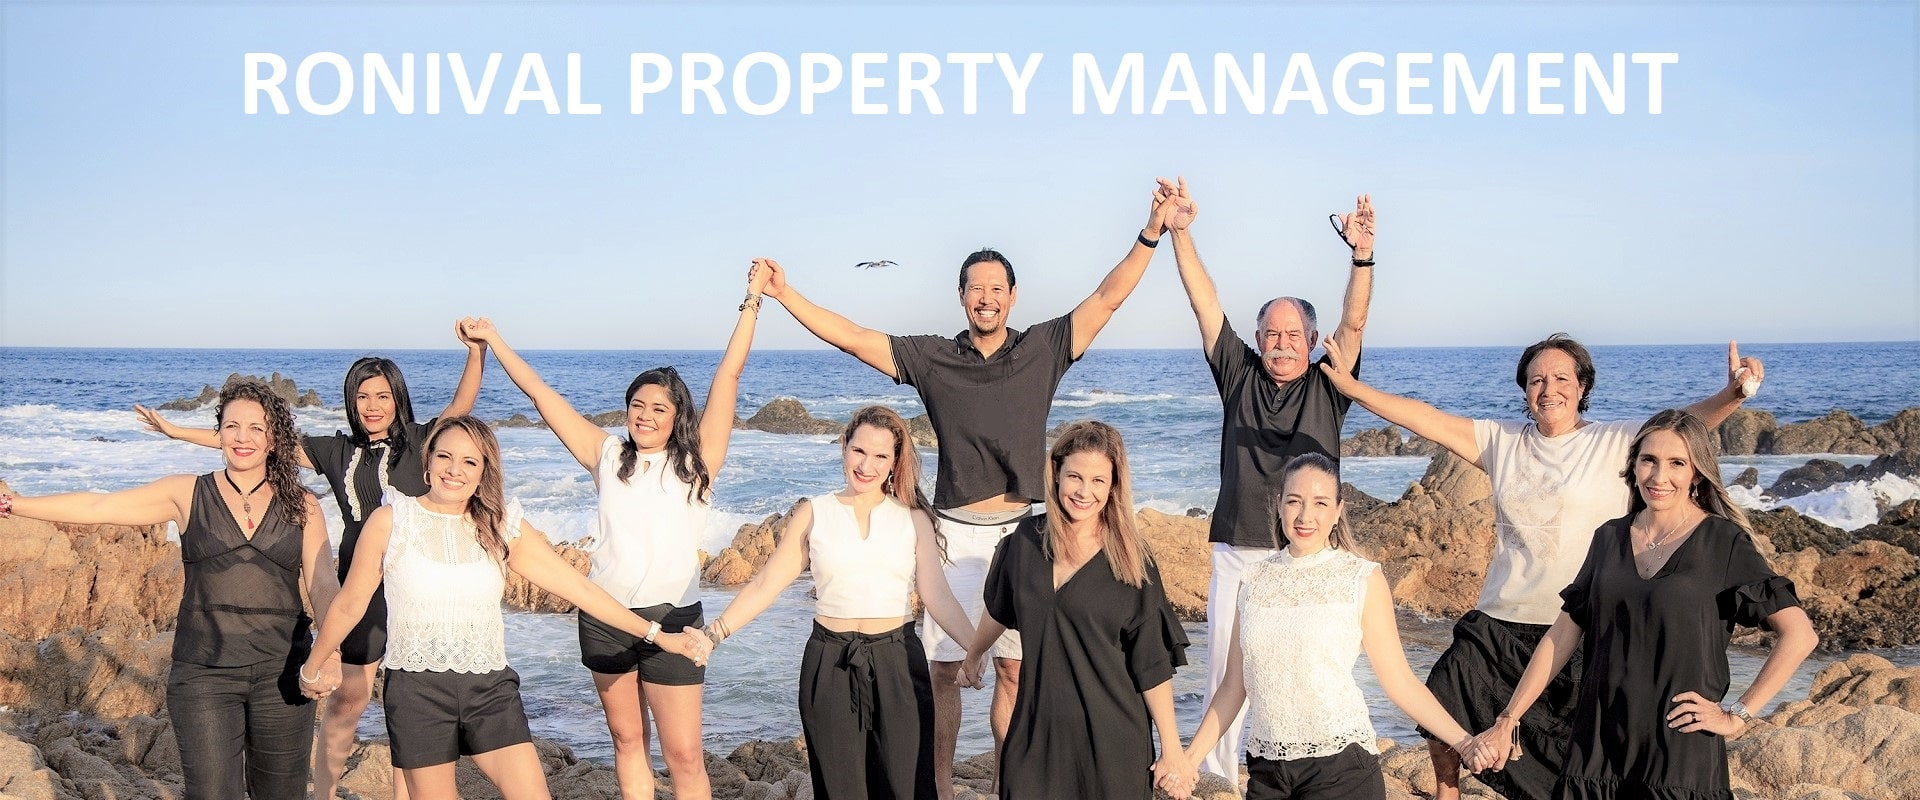 ronival property management